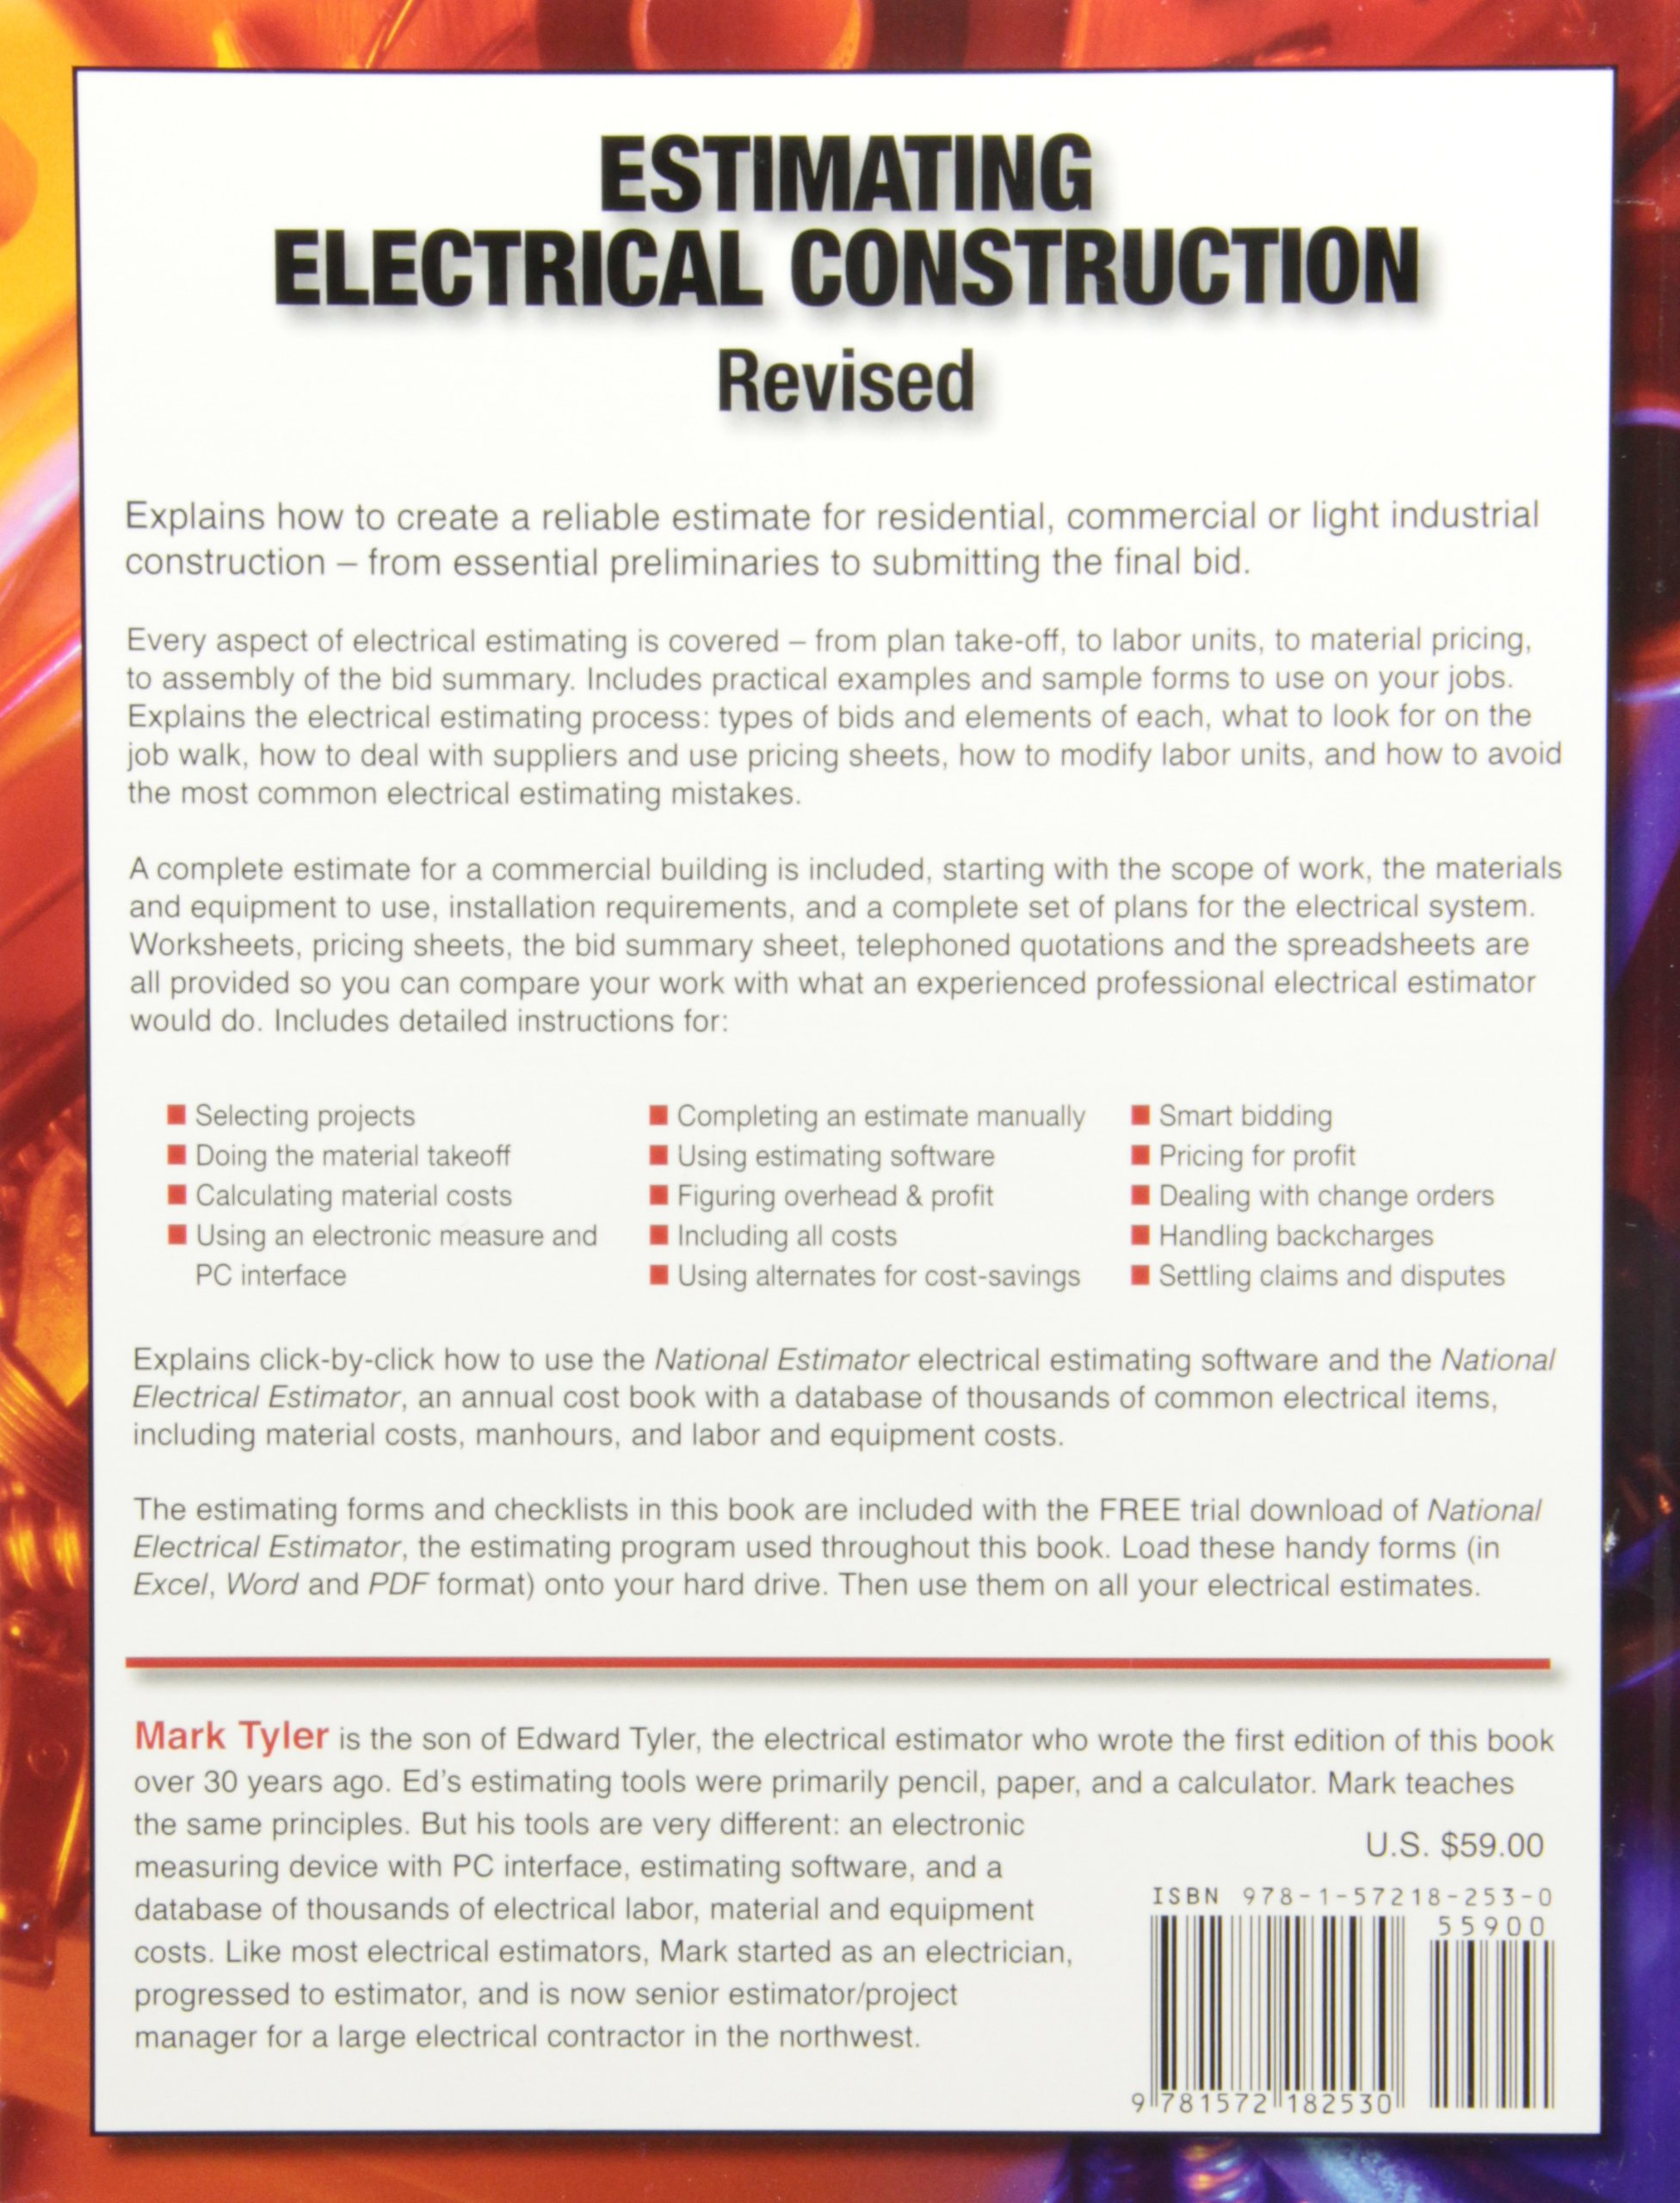 electrical estimate nilza net estimating electrical construction revised mark tyler